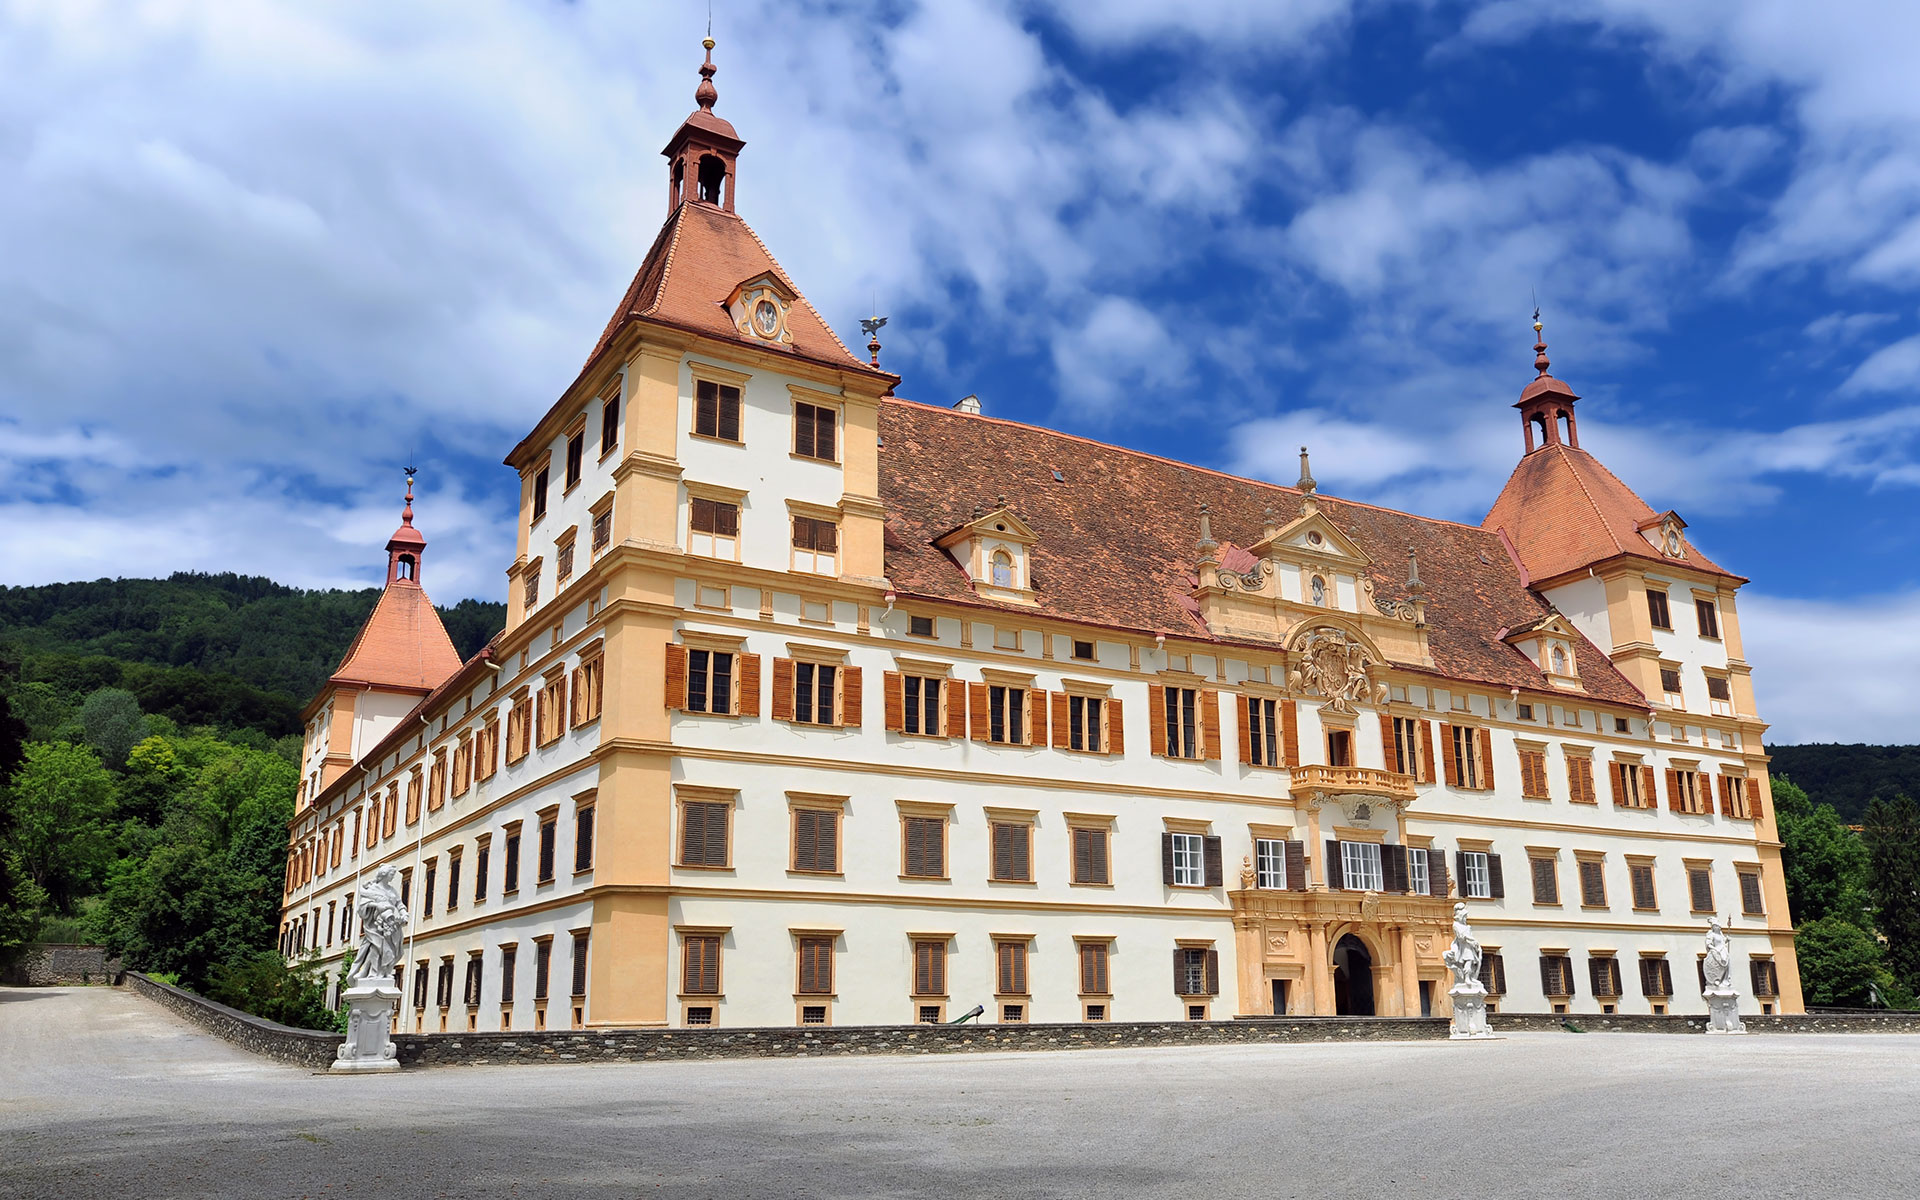 The Eggenberg Palace on the western edge of Graz - the Styrian capital will get a direct link from Berlin and Dresden from early May 2020 (photo © Pavle Marjanovic / dreamstime.com).